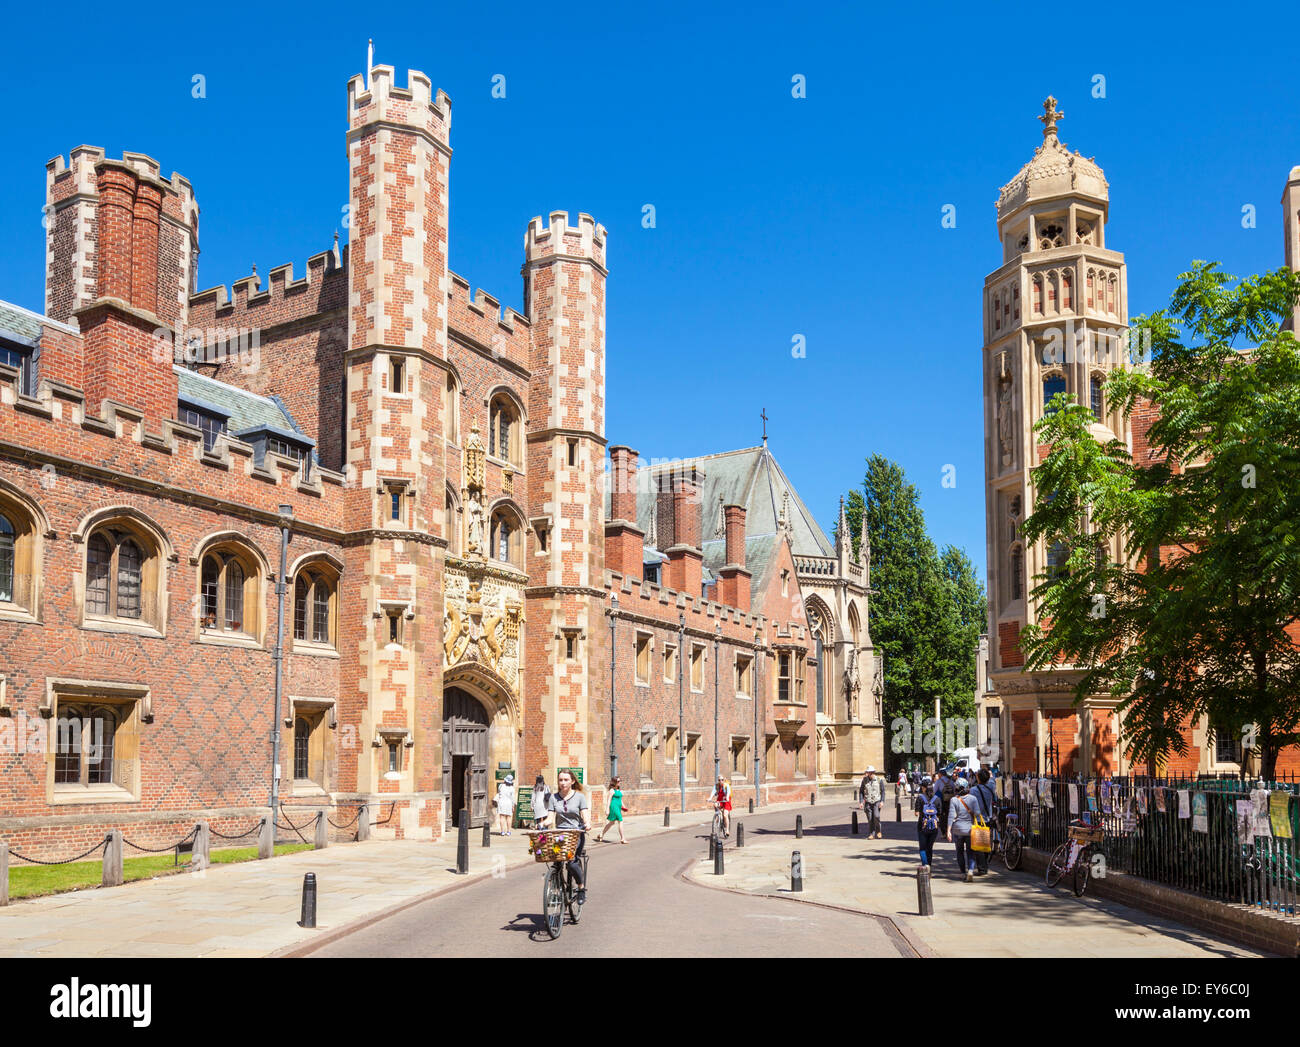 St Johns College entrance St Johns street Cambridge University Cambridge Cambridgeshire England UK GB EU Europe - Stock Image